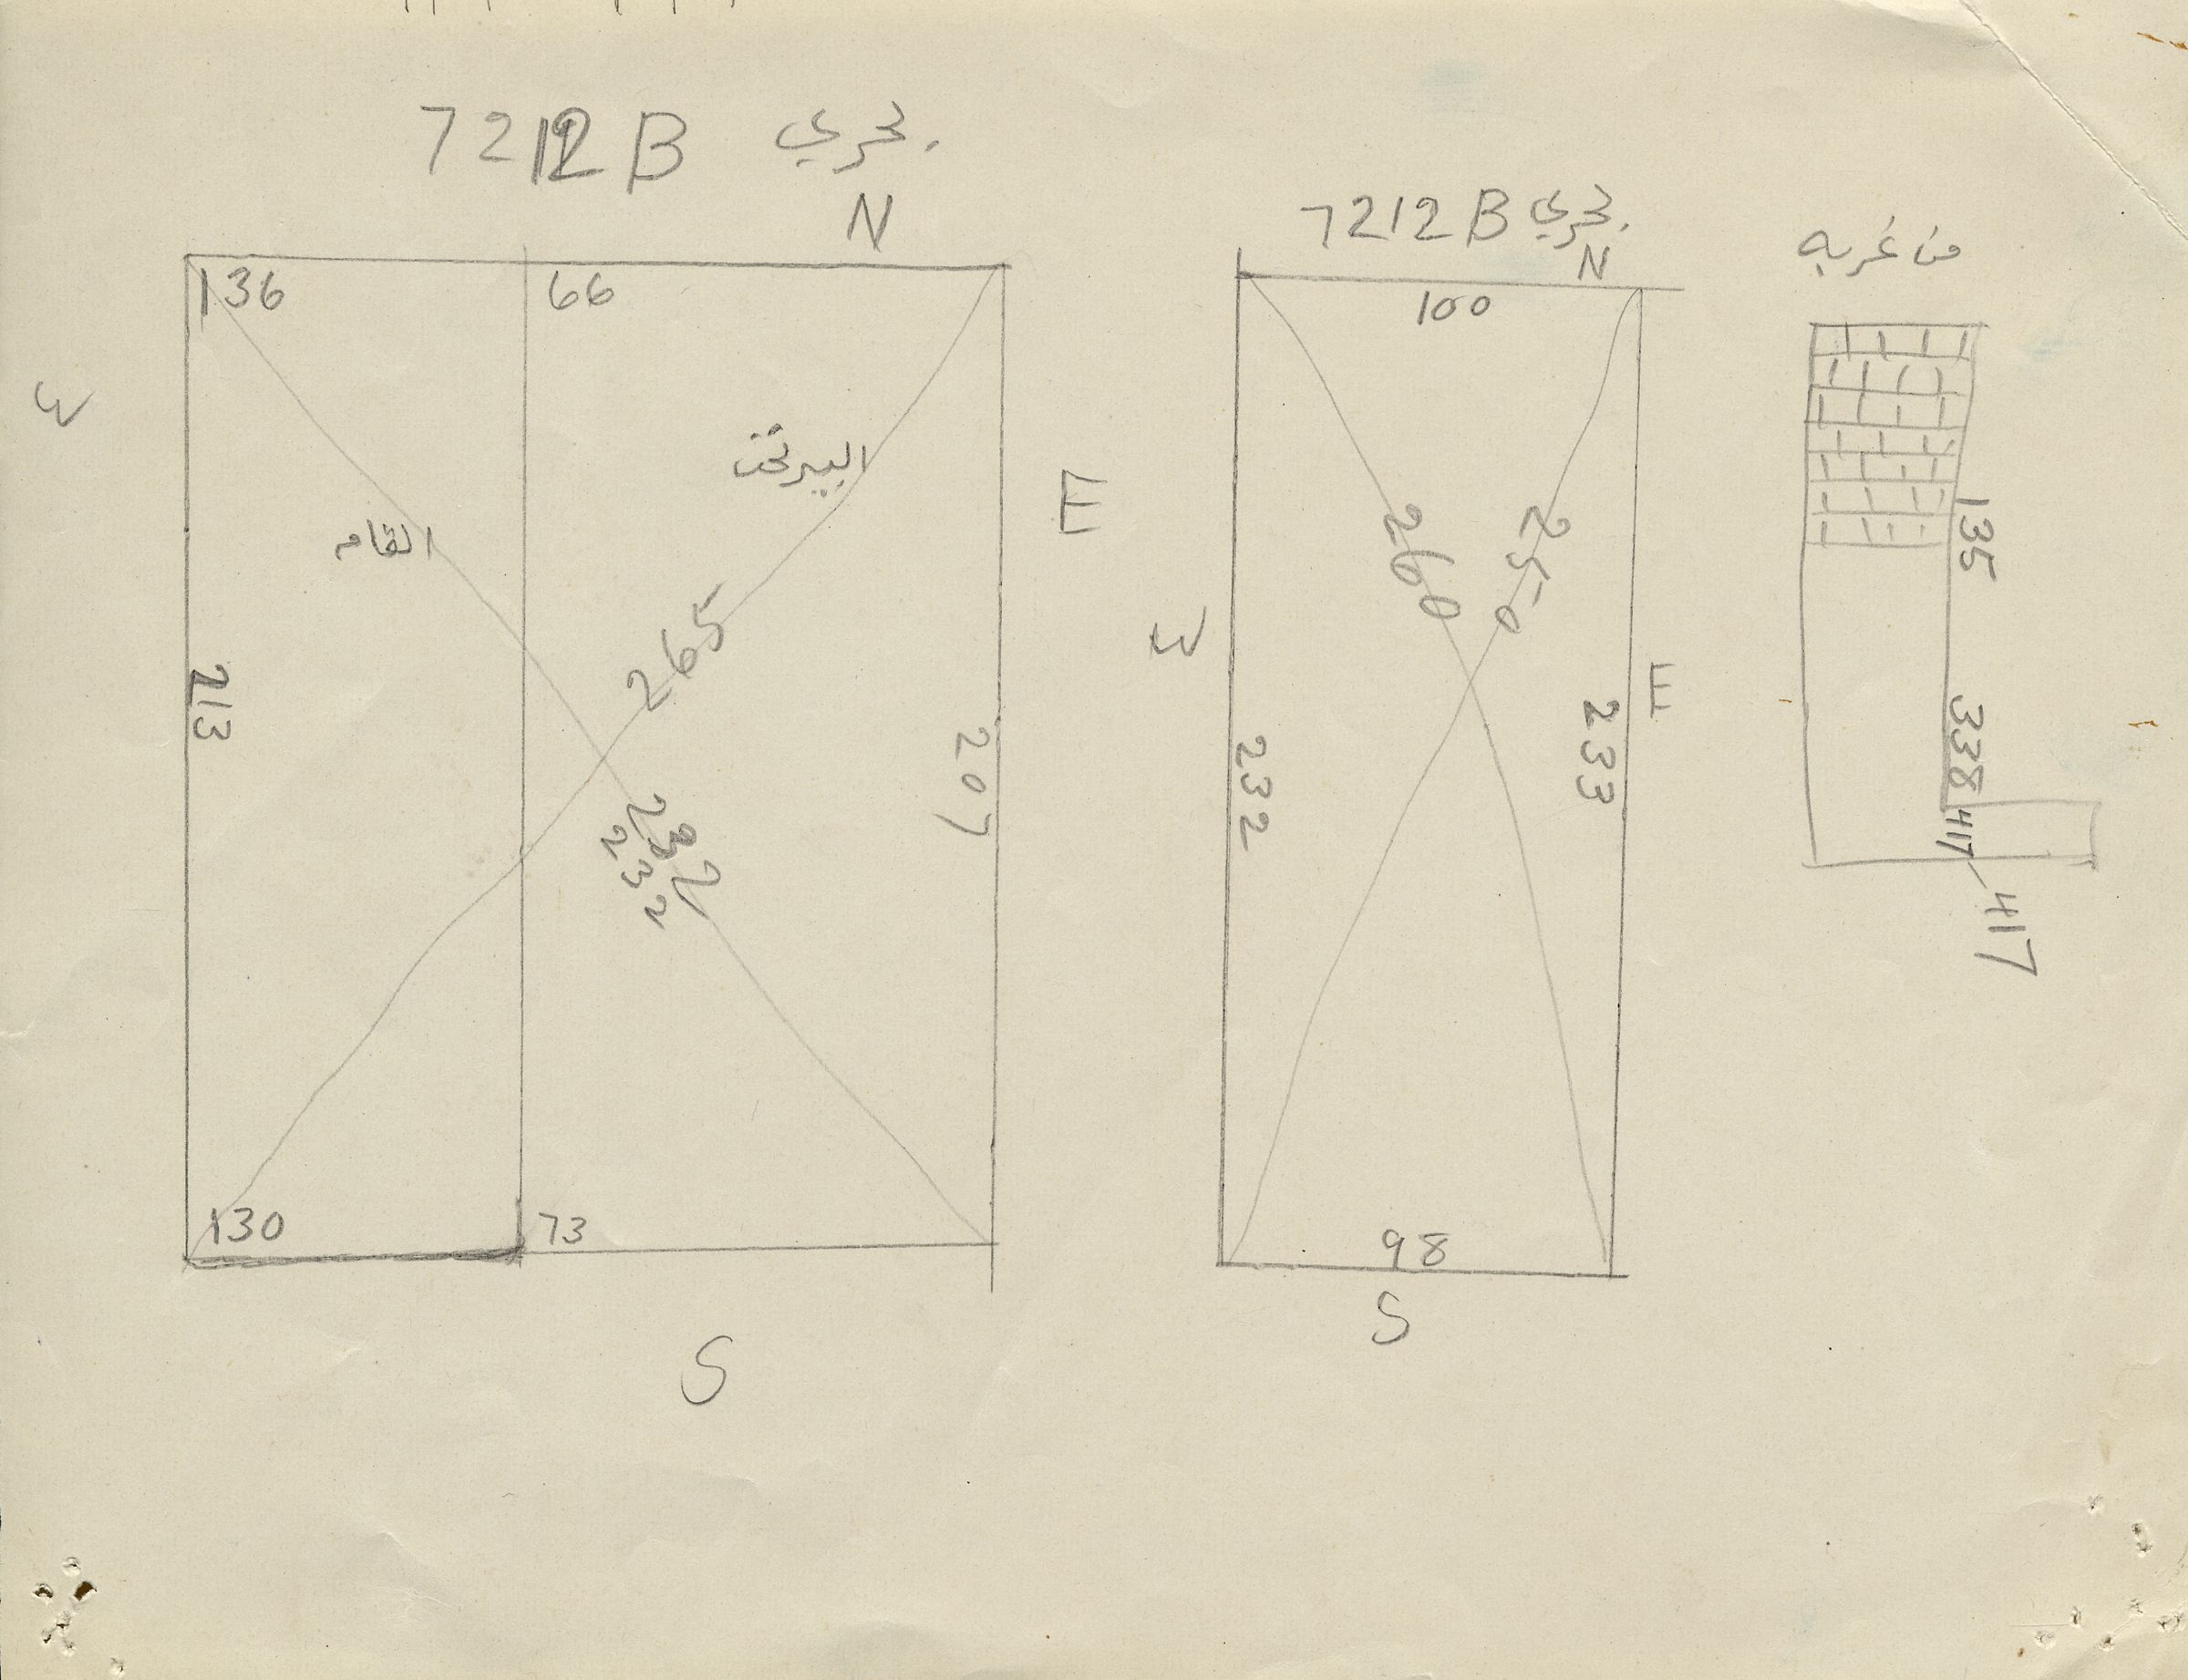 Maps and plans: G 7212, Shaft B